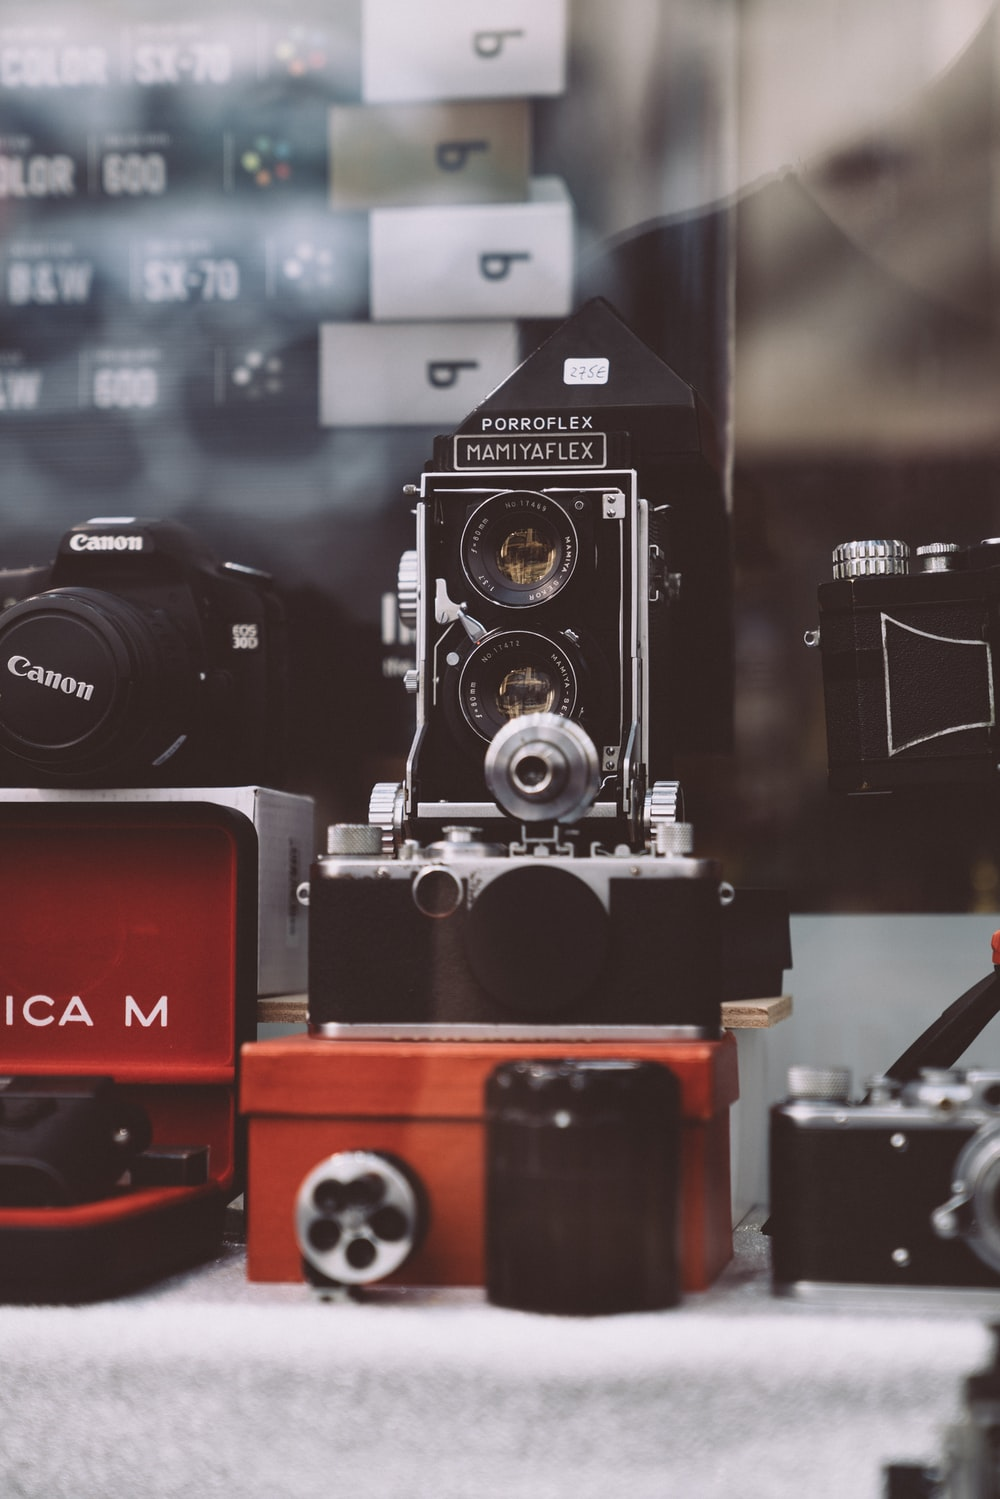 500 mm pictures hd download free images on unsplash